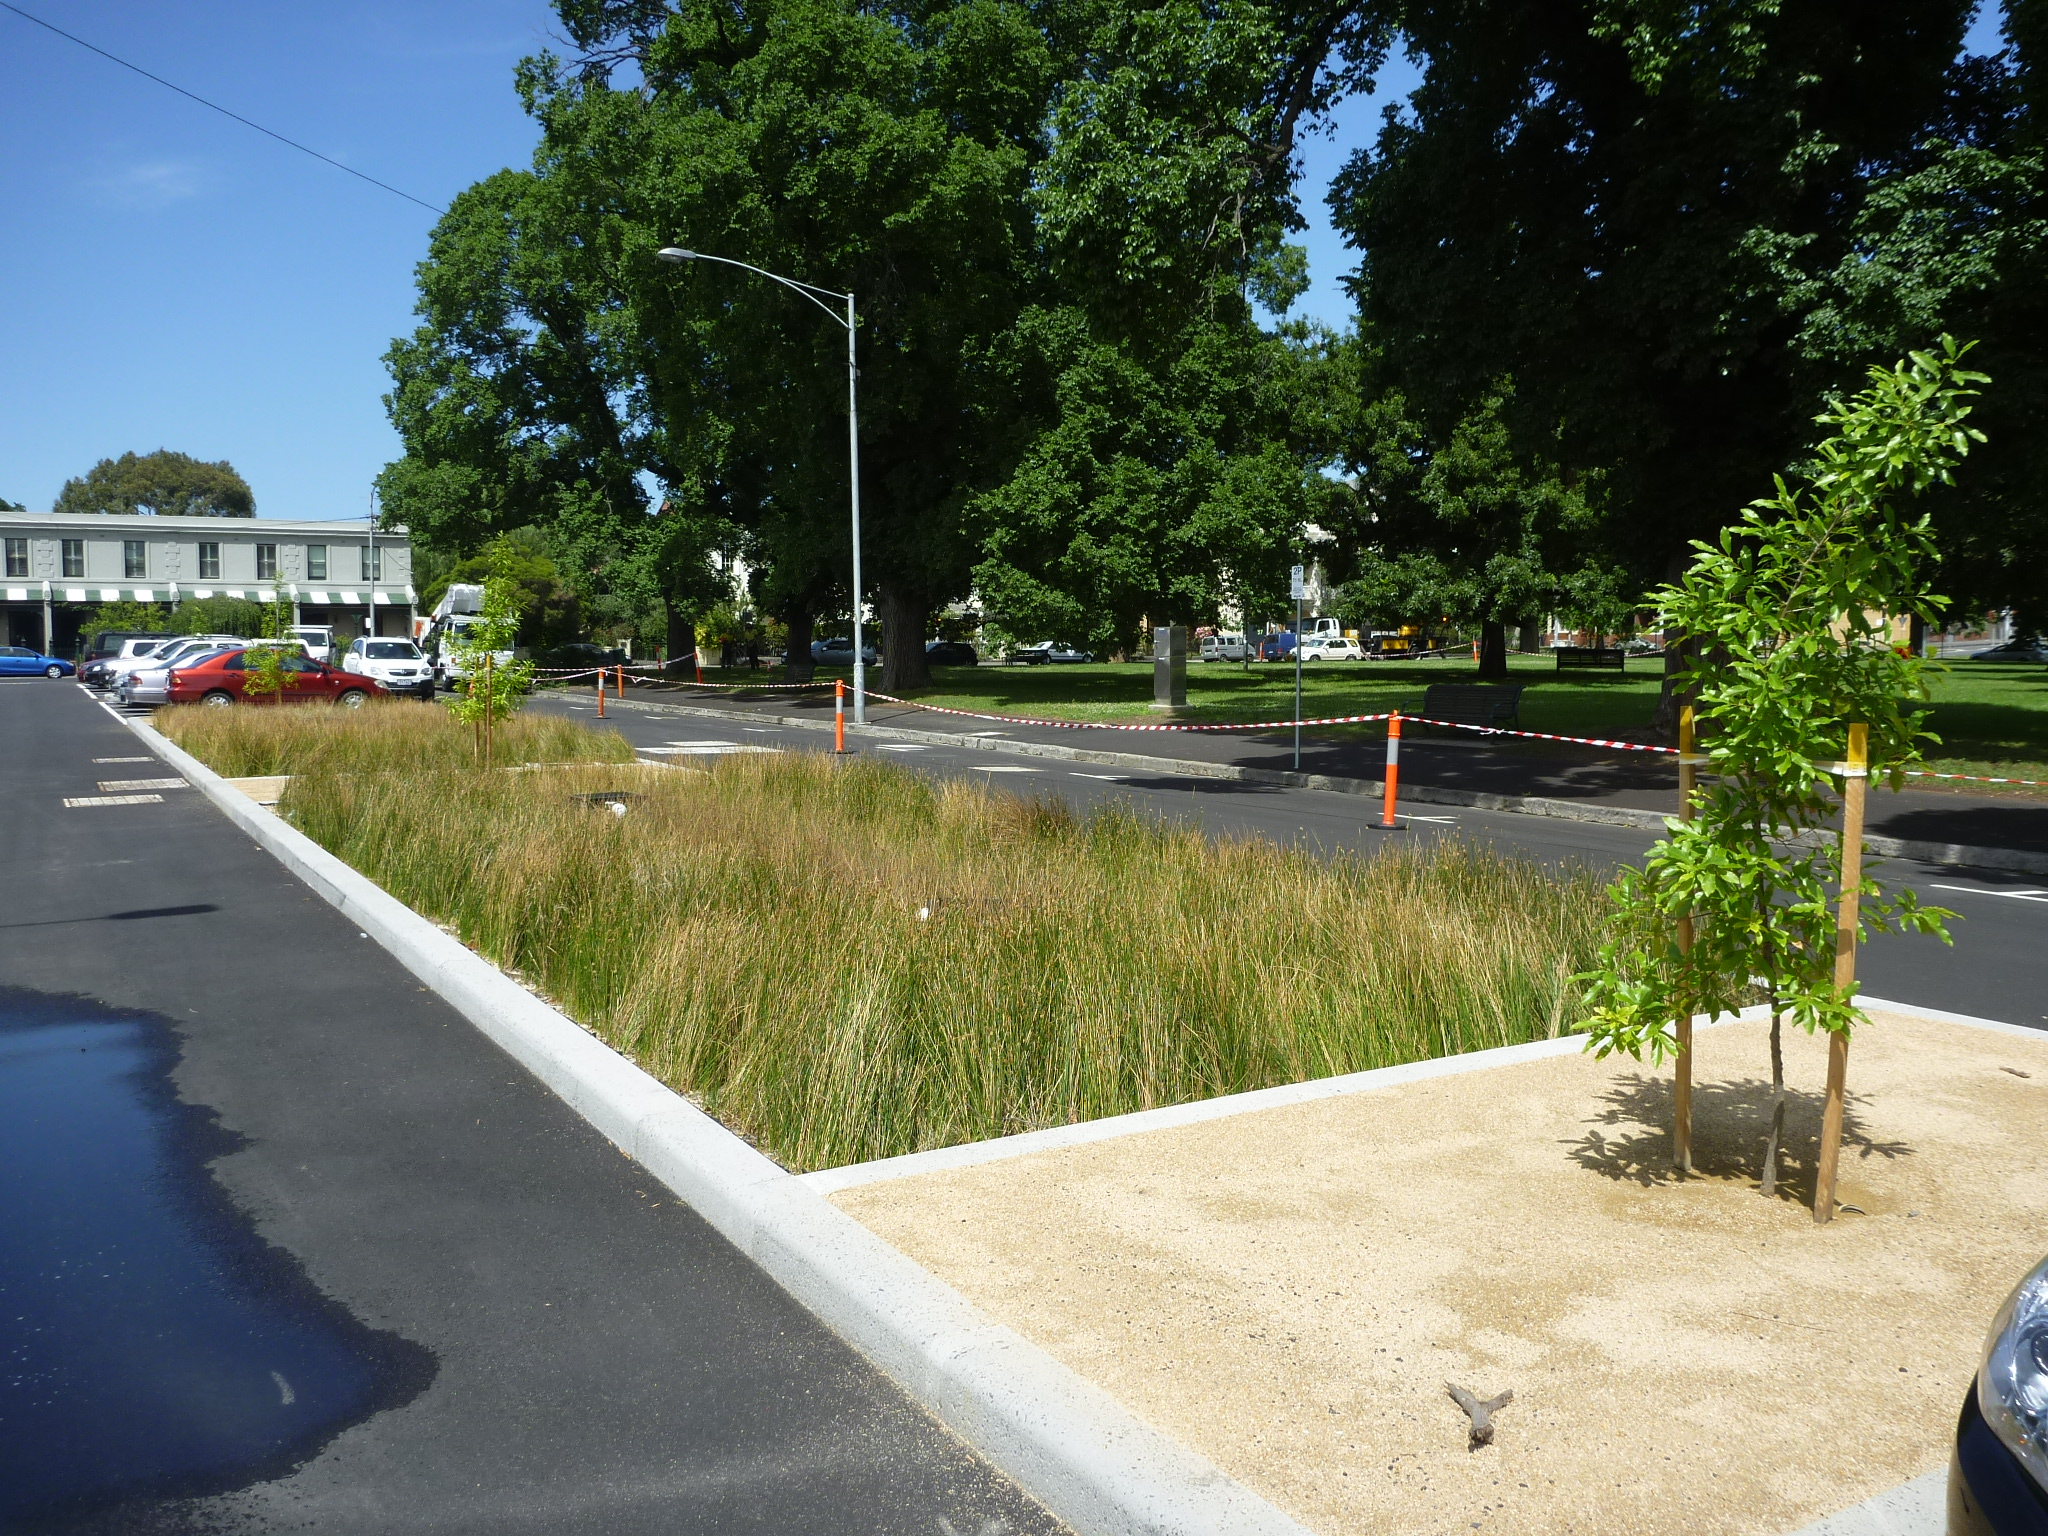 4. Darling st Completed project with Biofilta beds in the middle of the road.jpg